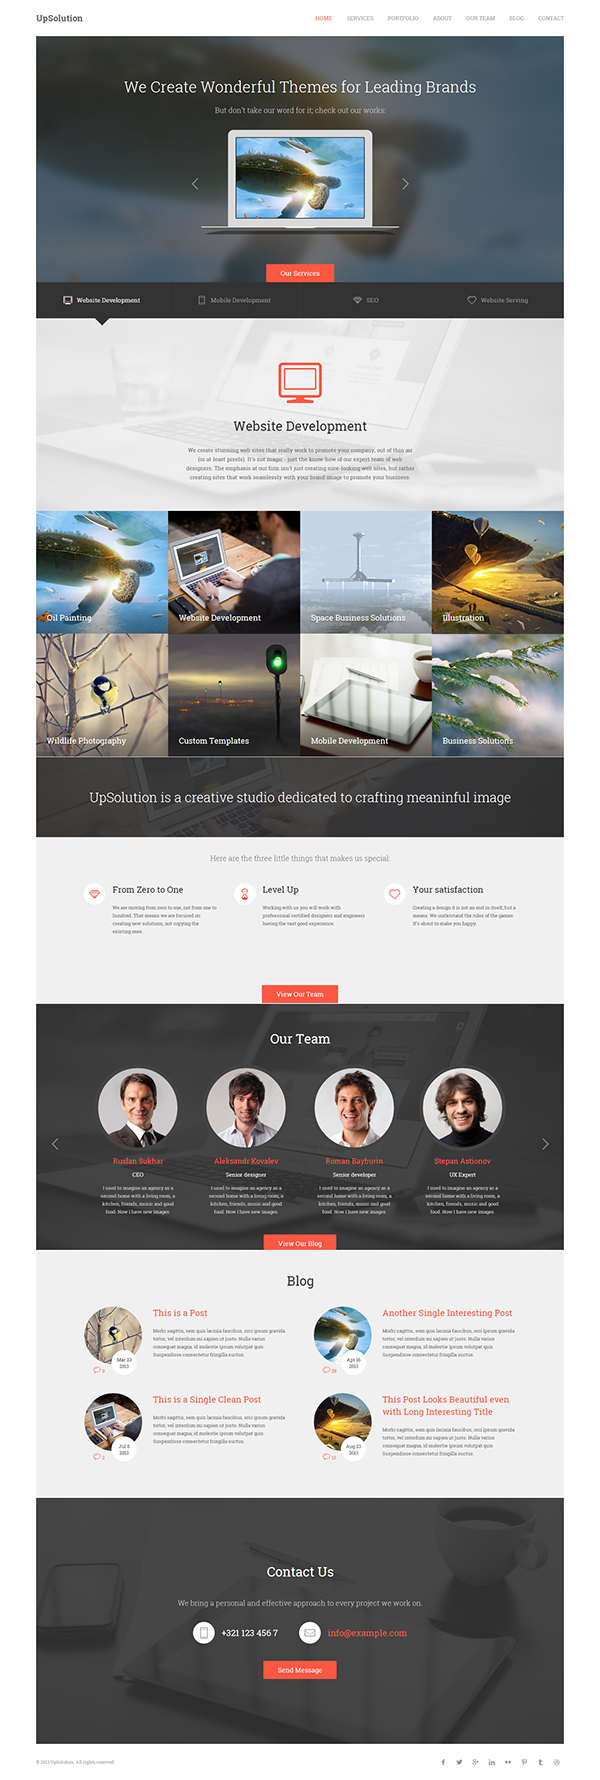 UpSolution - Marketing One Page HTML5 Template on Behance